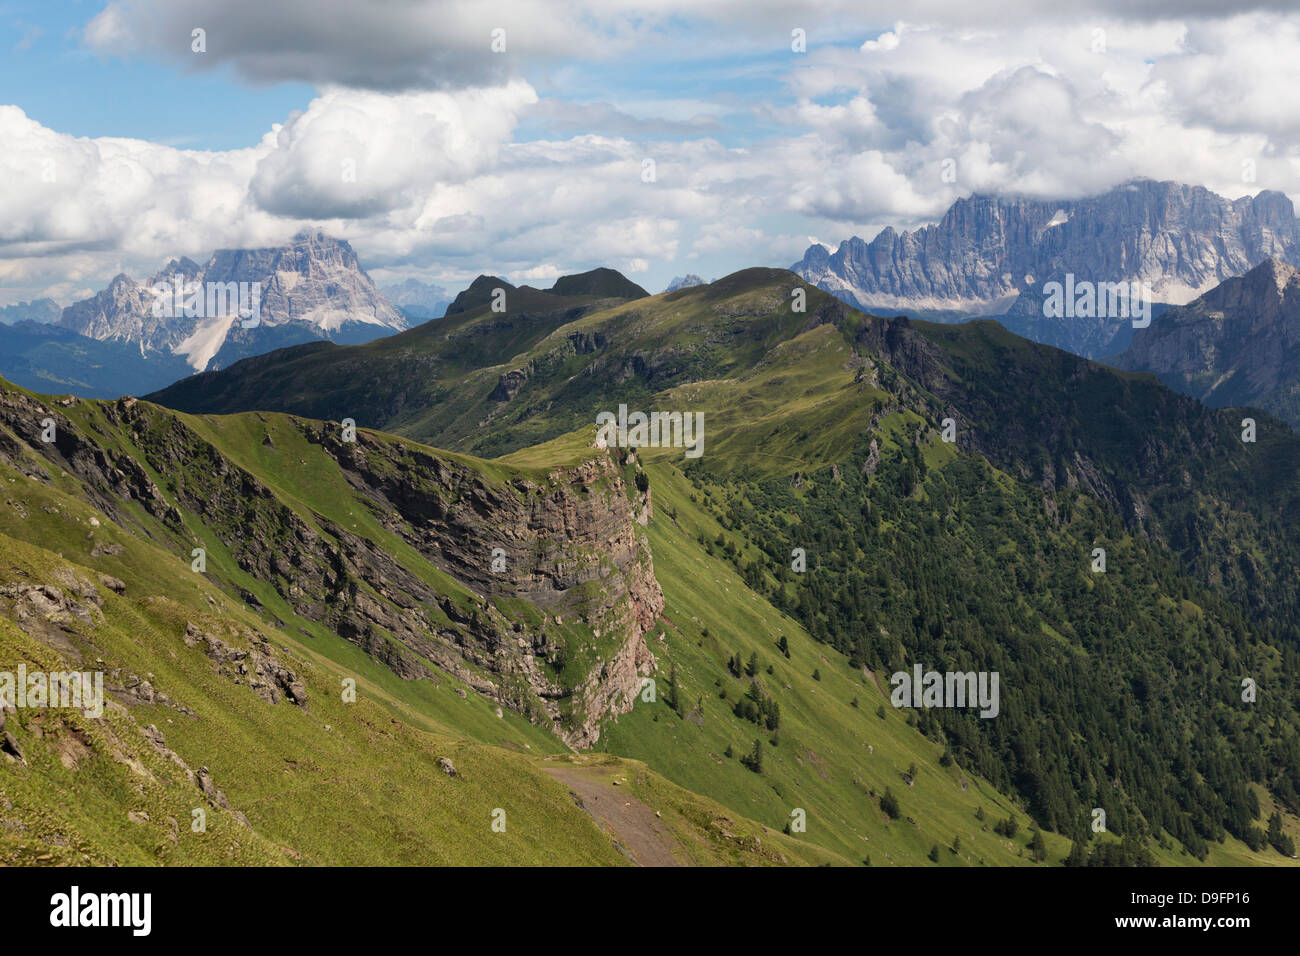 Rugged mountains in the Dolomites, Italy - Stock Image